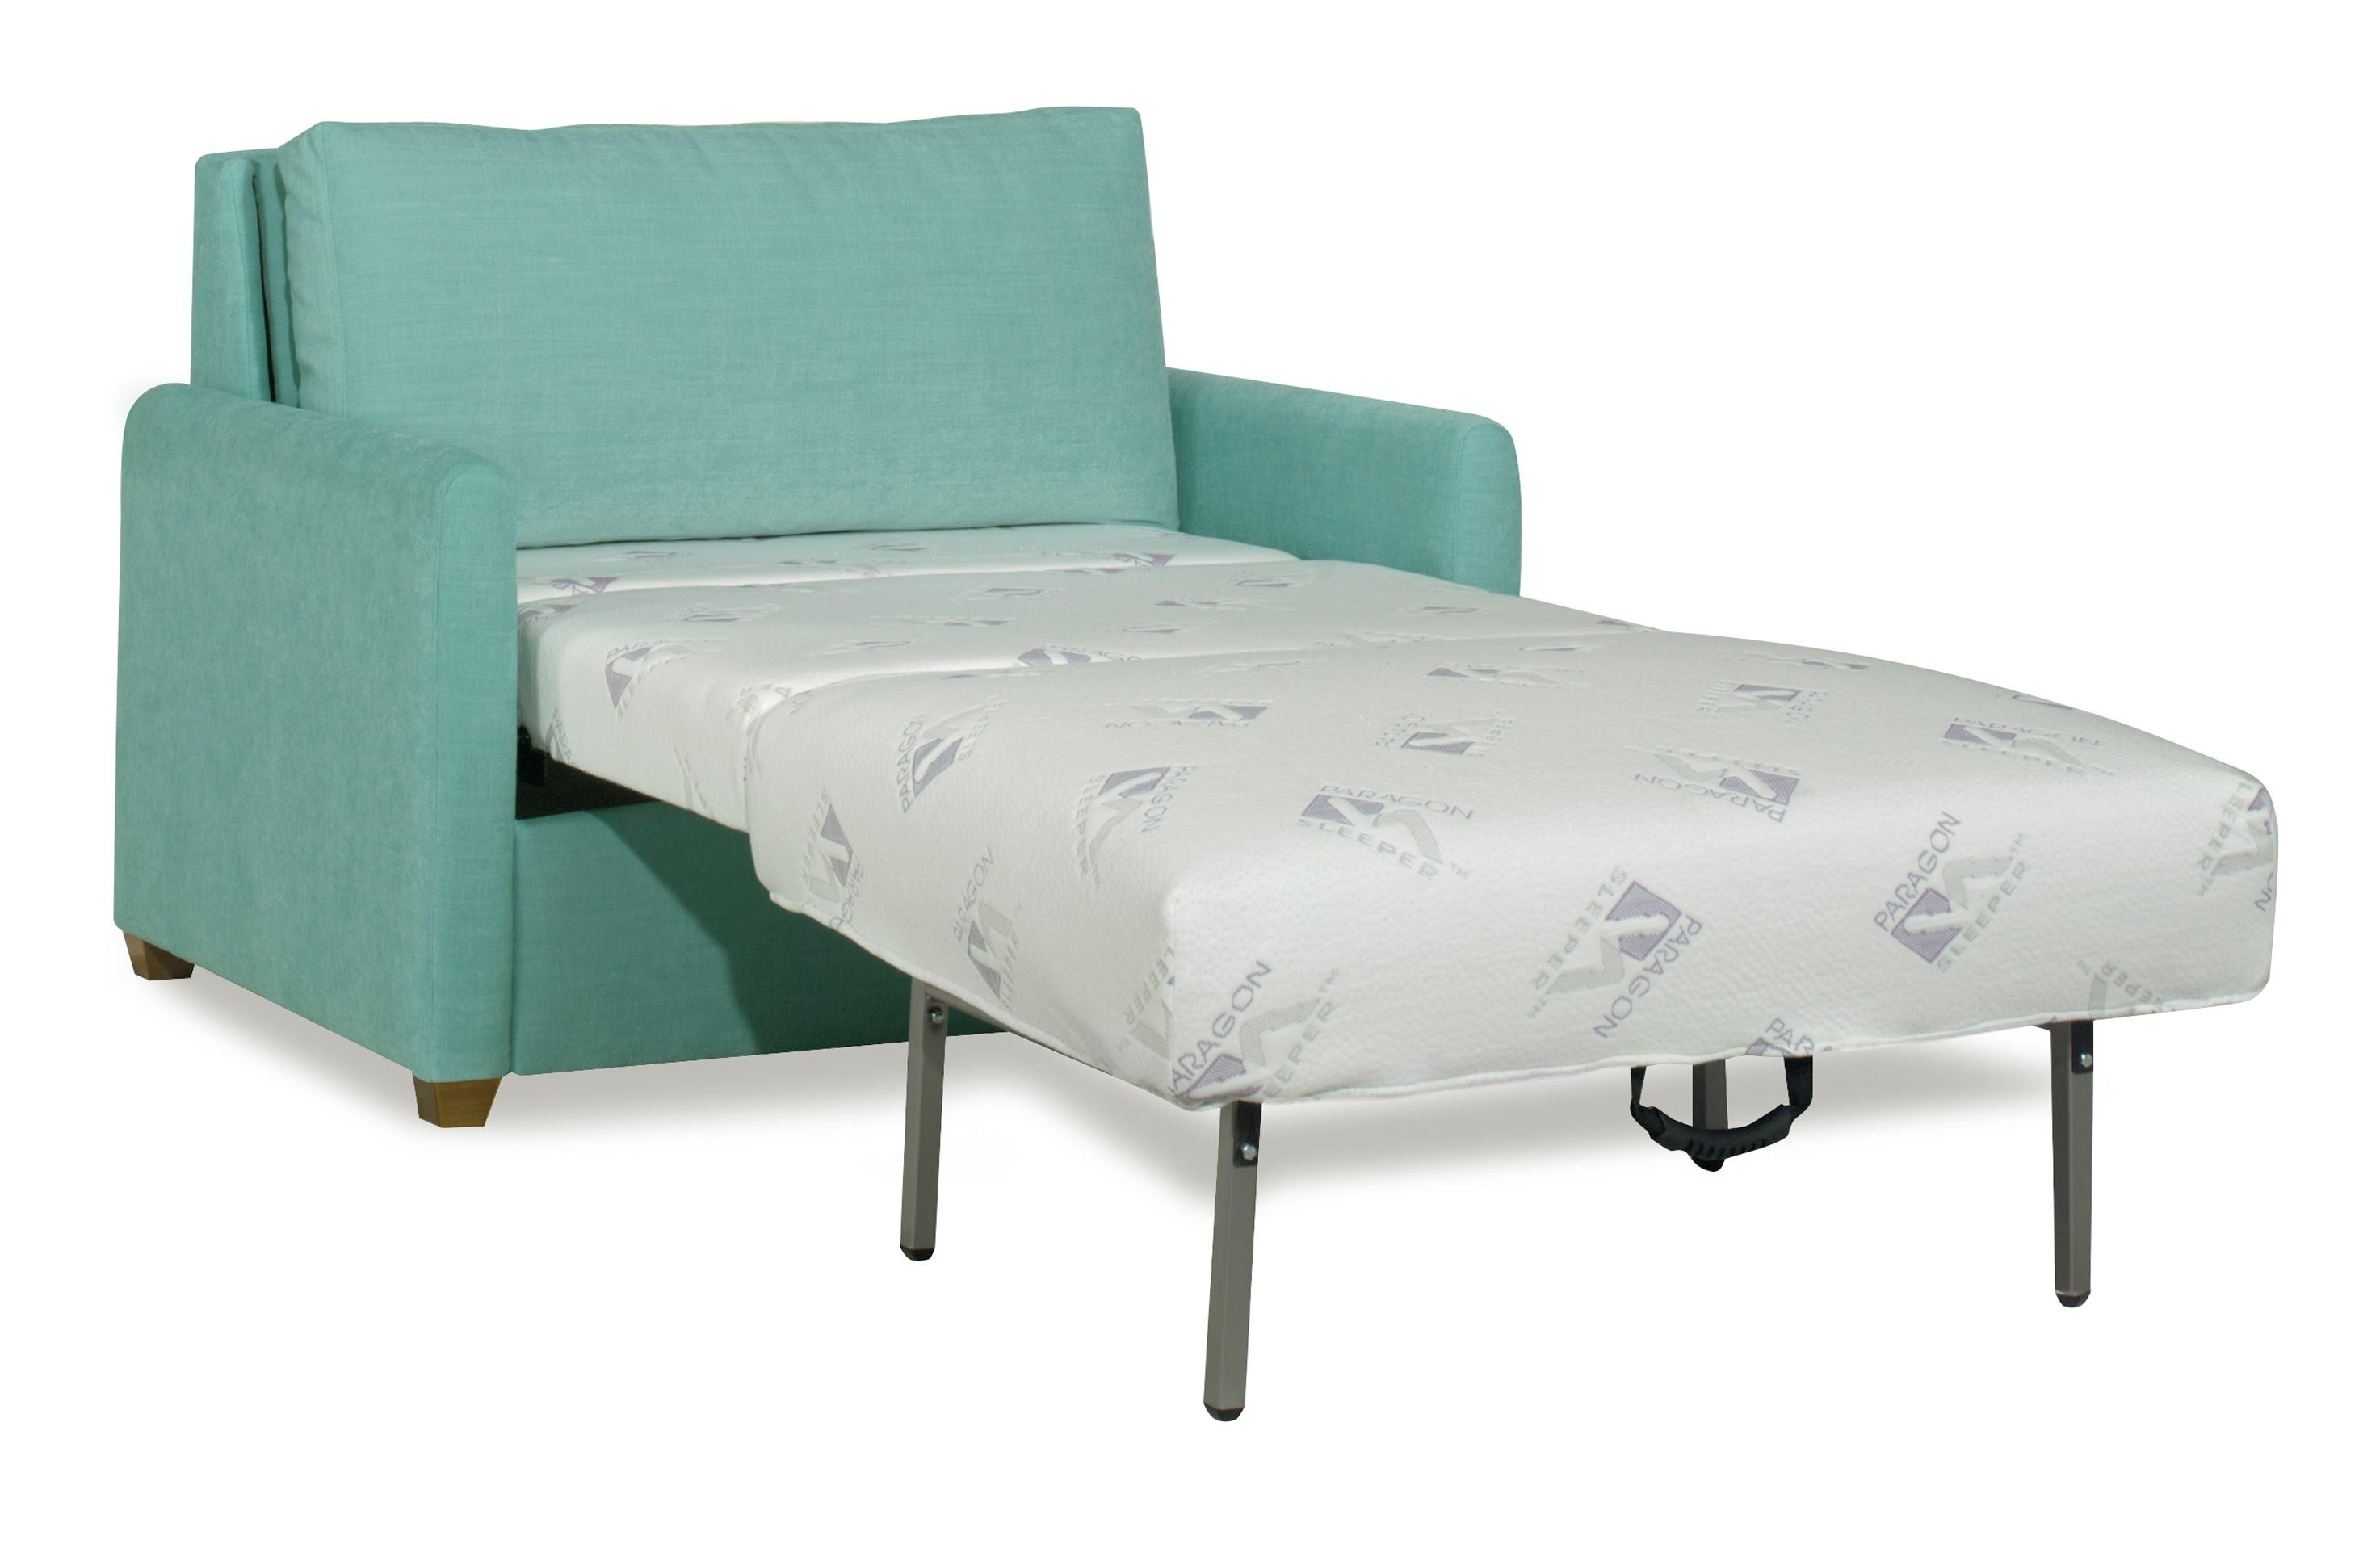 Twin Sleeper Chair | Twin Sleeper Chair Crate And Barrel – Youtube Throughout Crate And Barrel Futon Sofas (View 4 of 20)